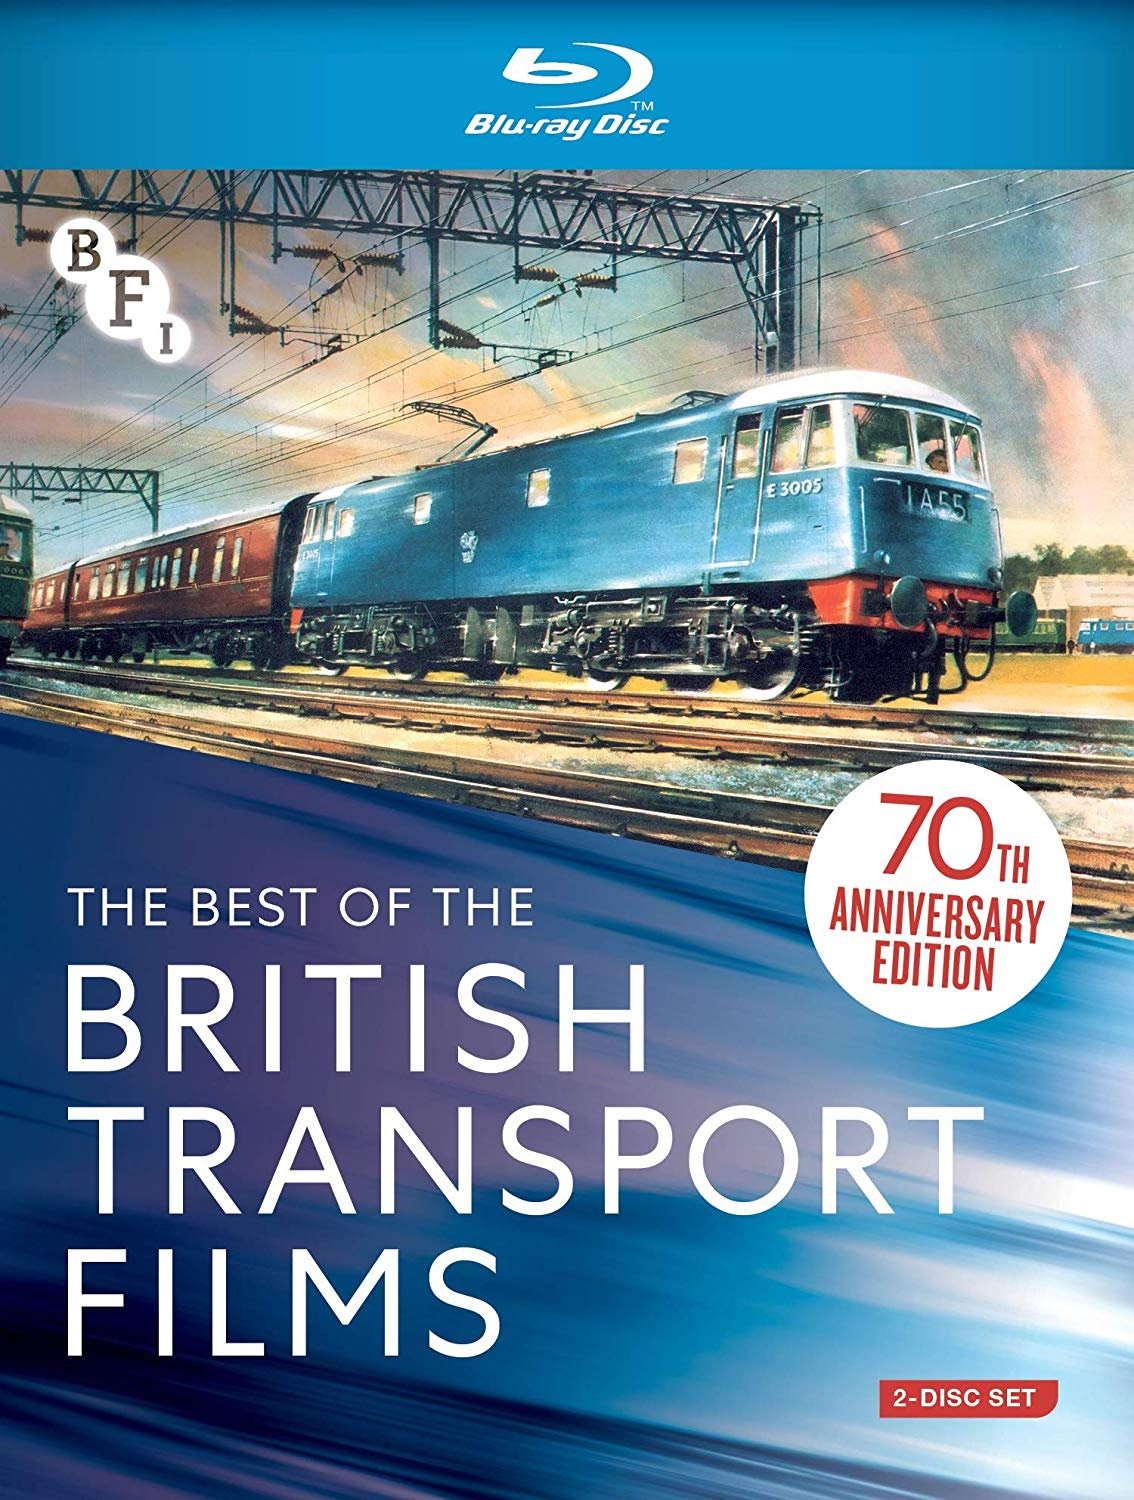 Buy British Transport Films Gift Set